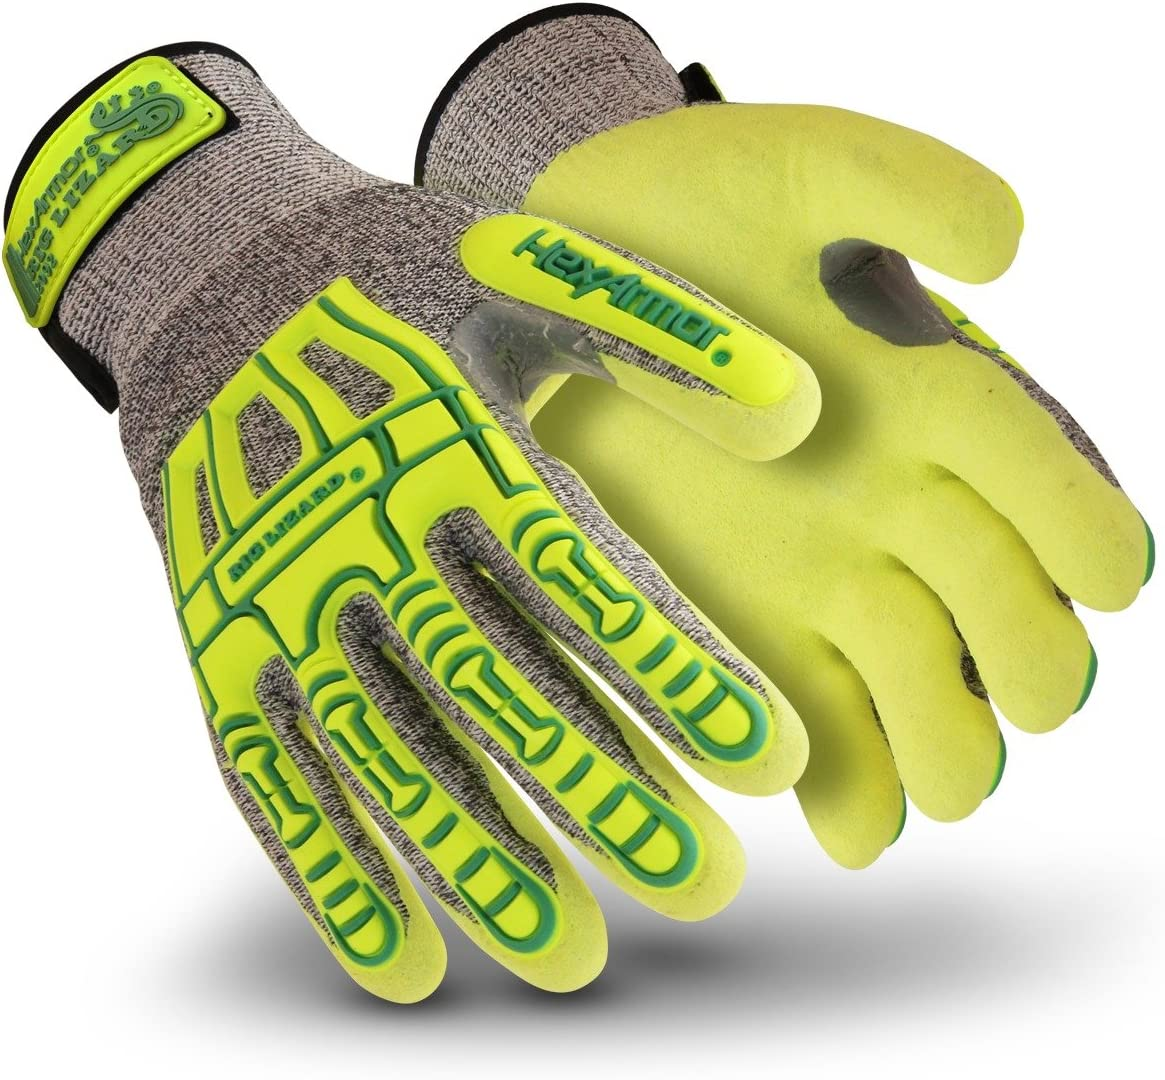 HexArmor Rig Lizard Thin Lizzie 2092 with All stores are sold Genuine Gloves San Work Impact